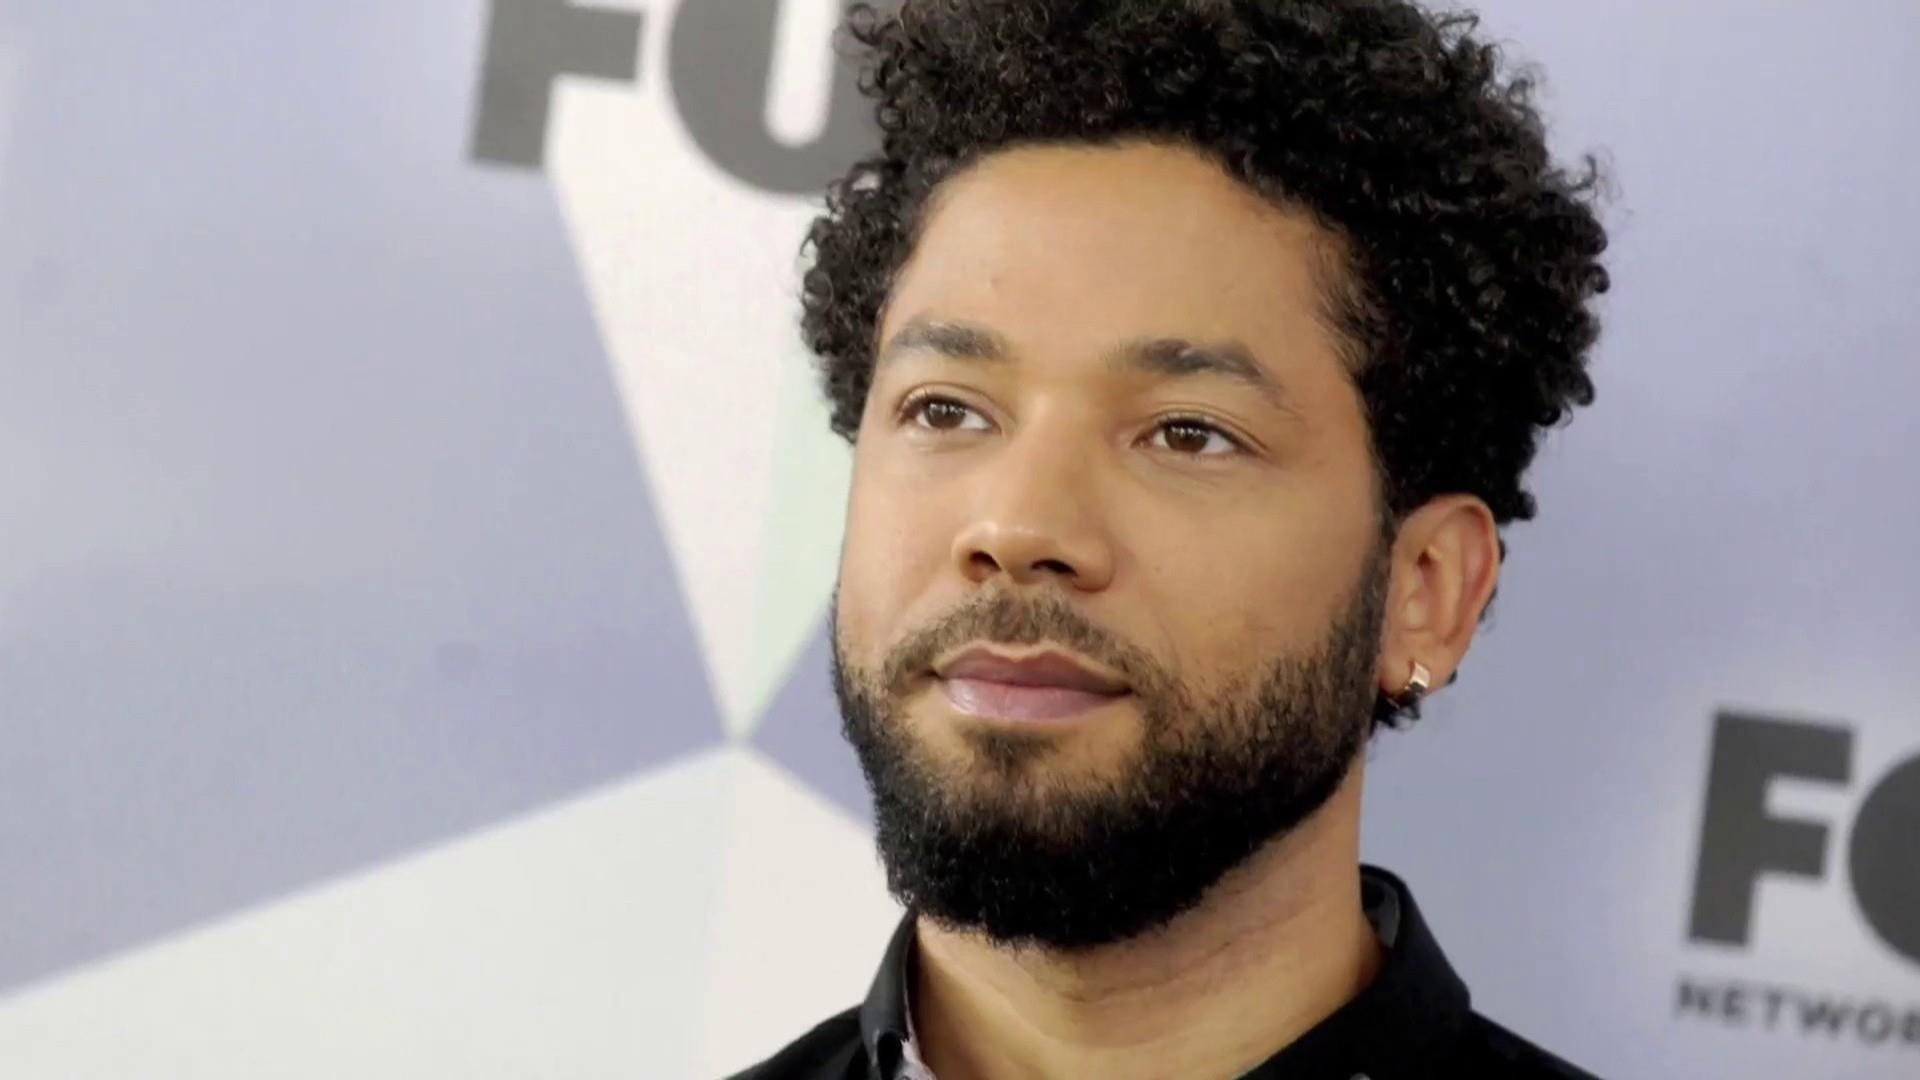 Jussie Smollett case: Special prosecutor appointed by judge